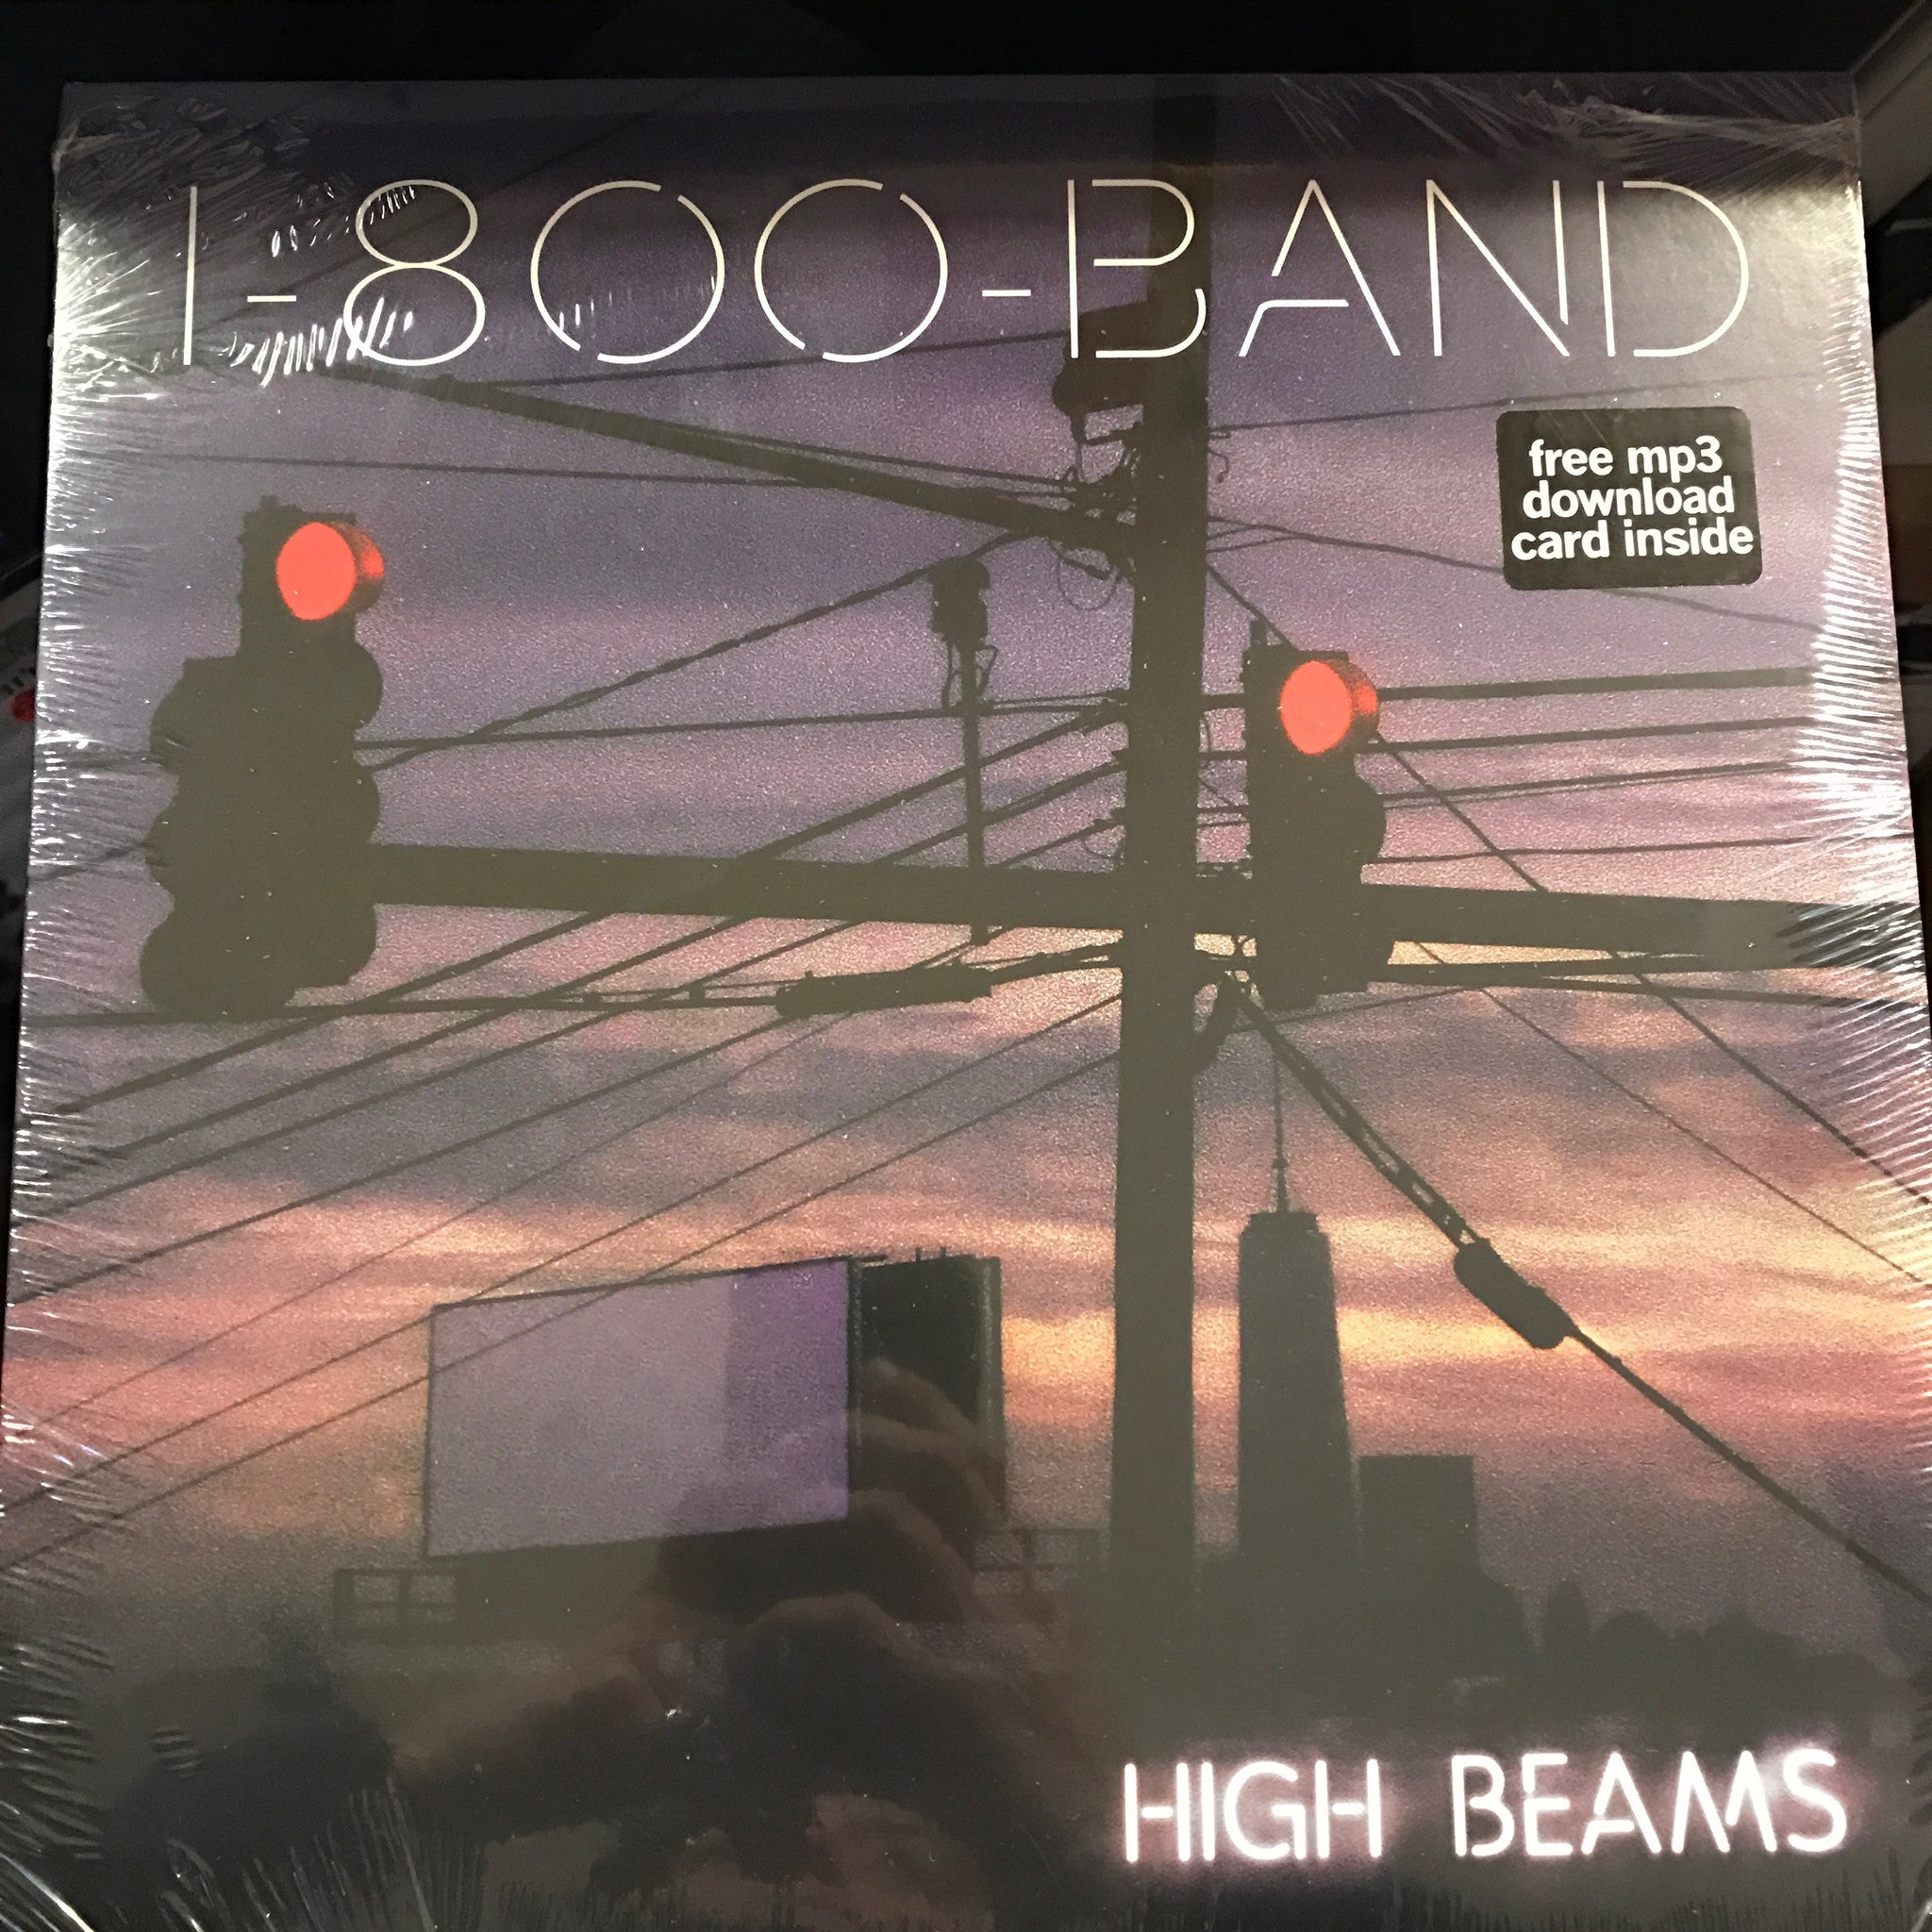 1-800-Band - High Beams LP